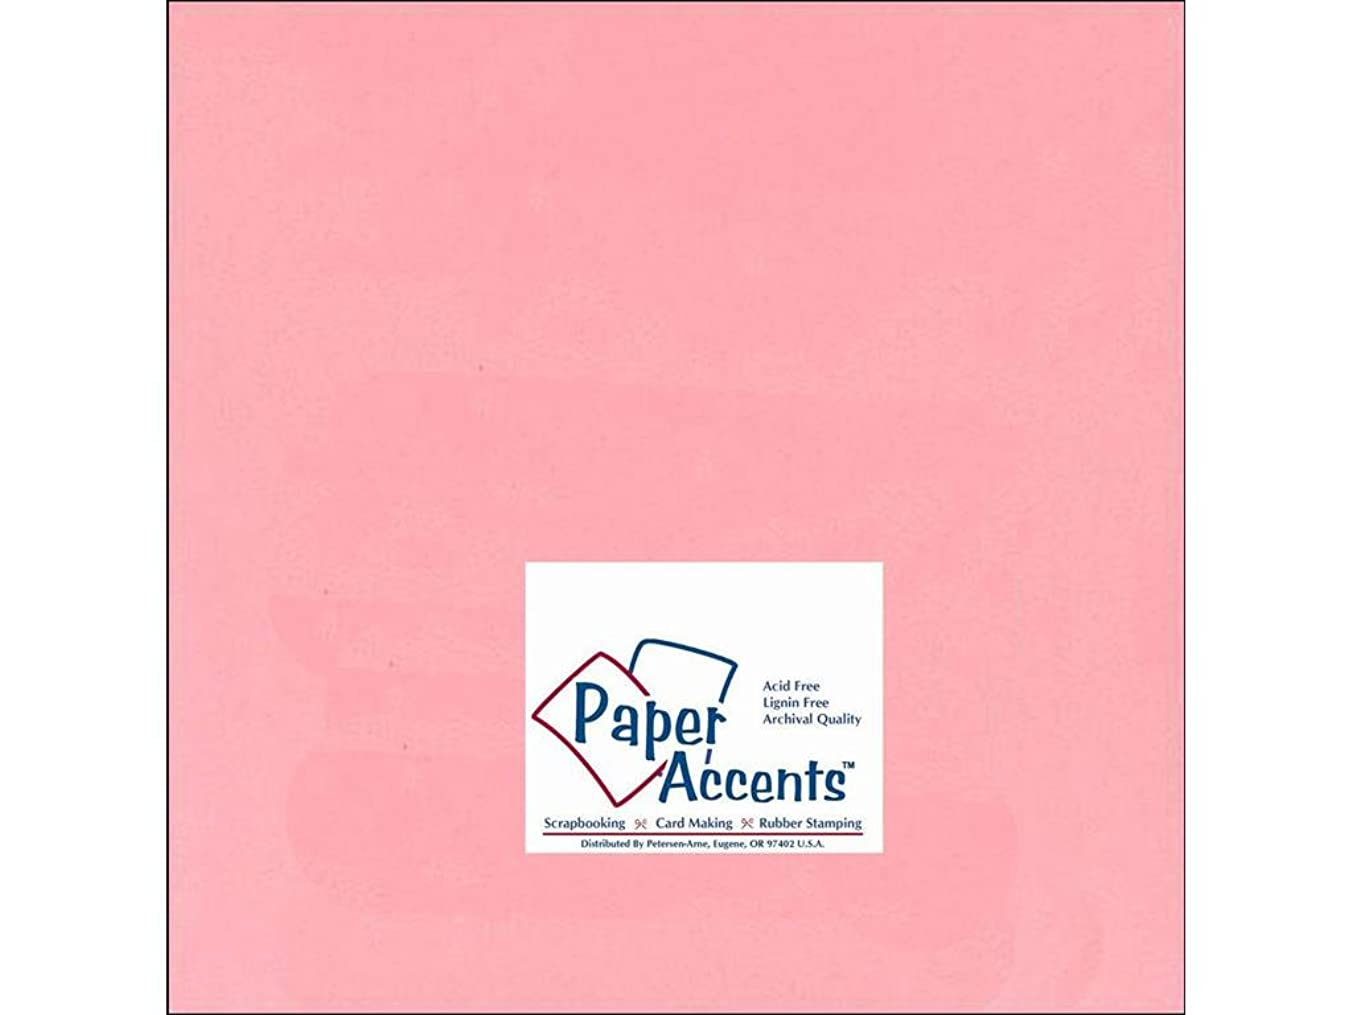 Accent Design Paper Accents Cdstk Smooth 12x12 60# Light Pink